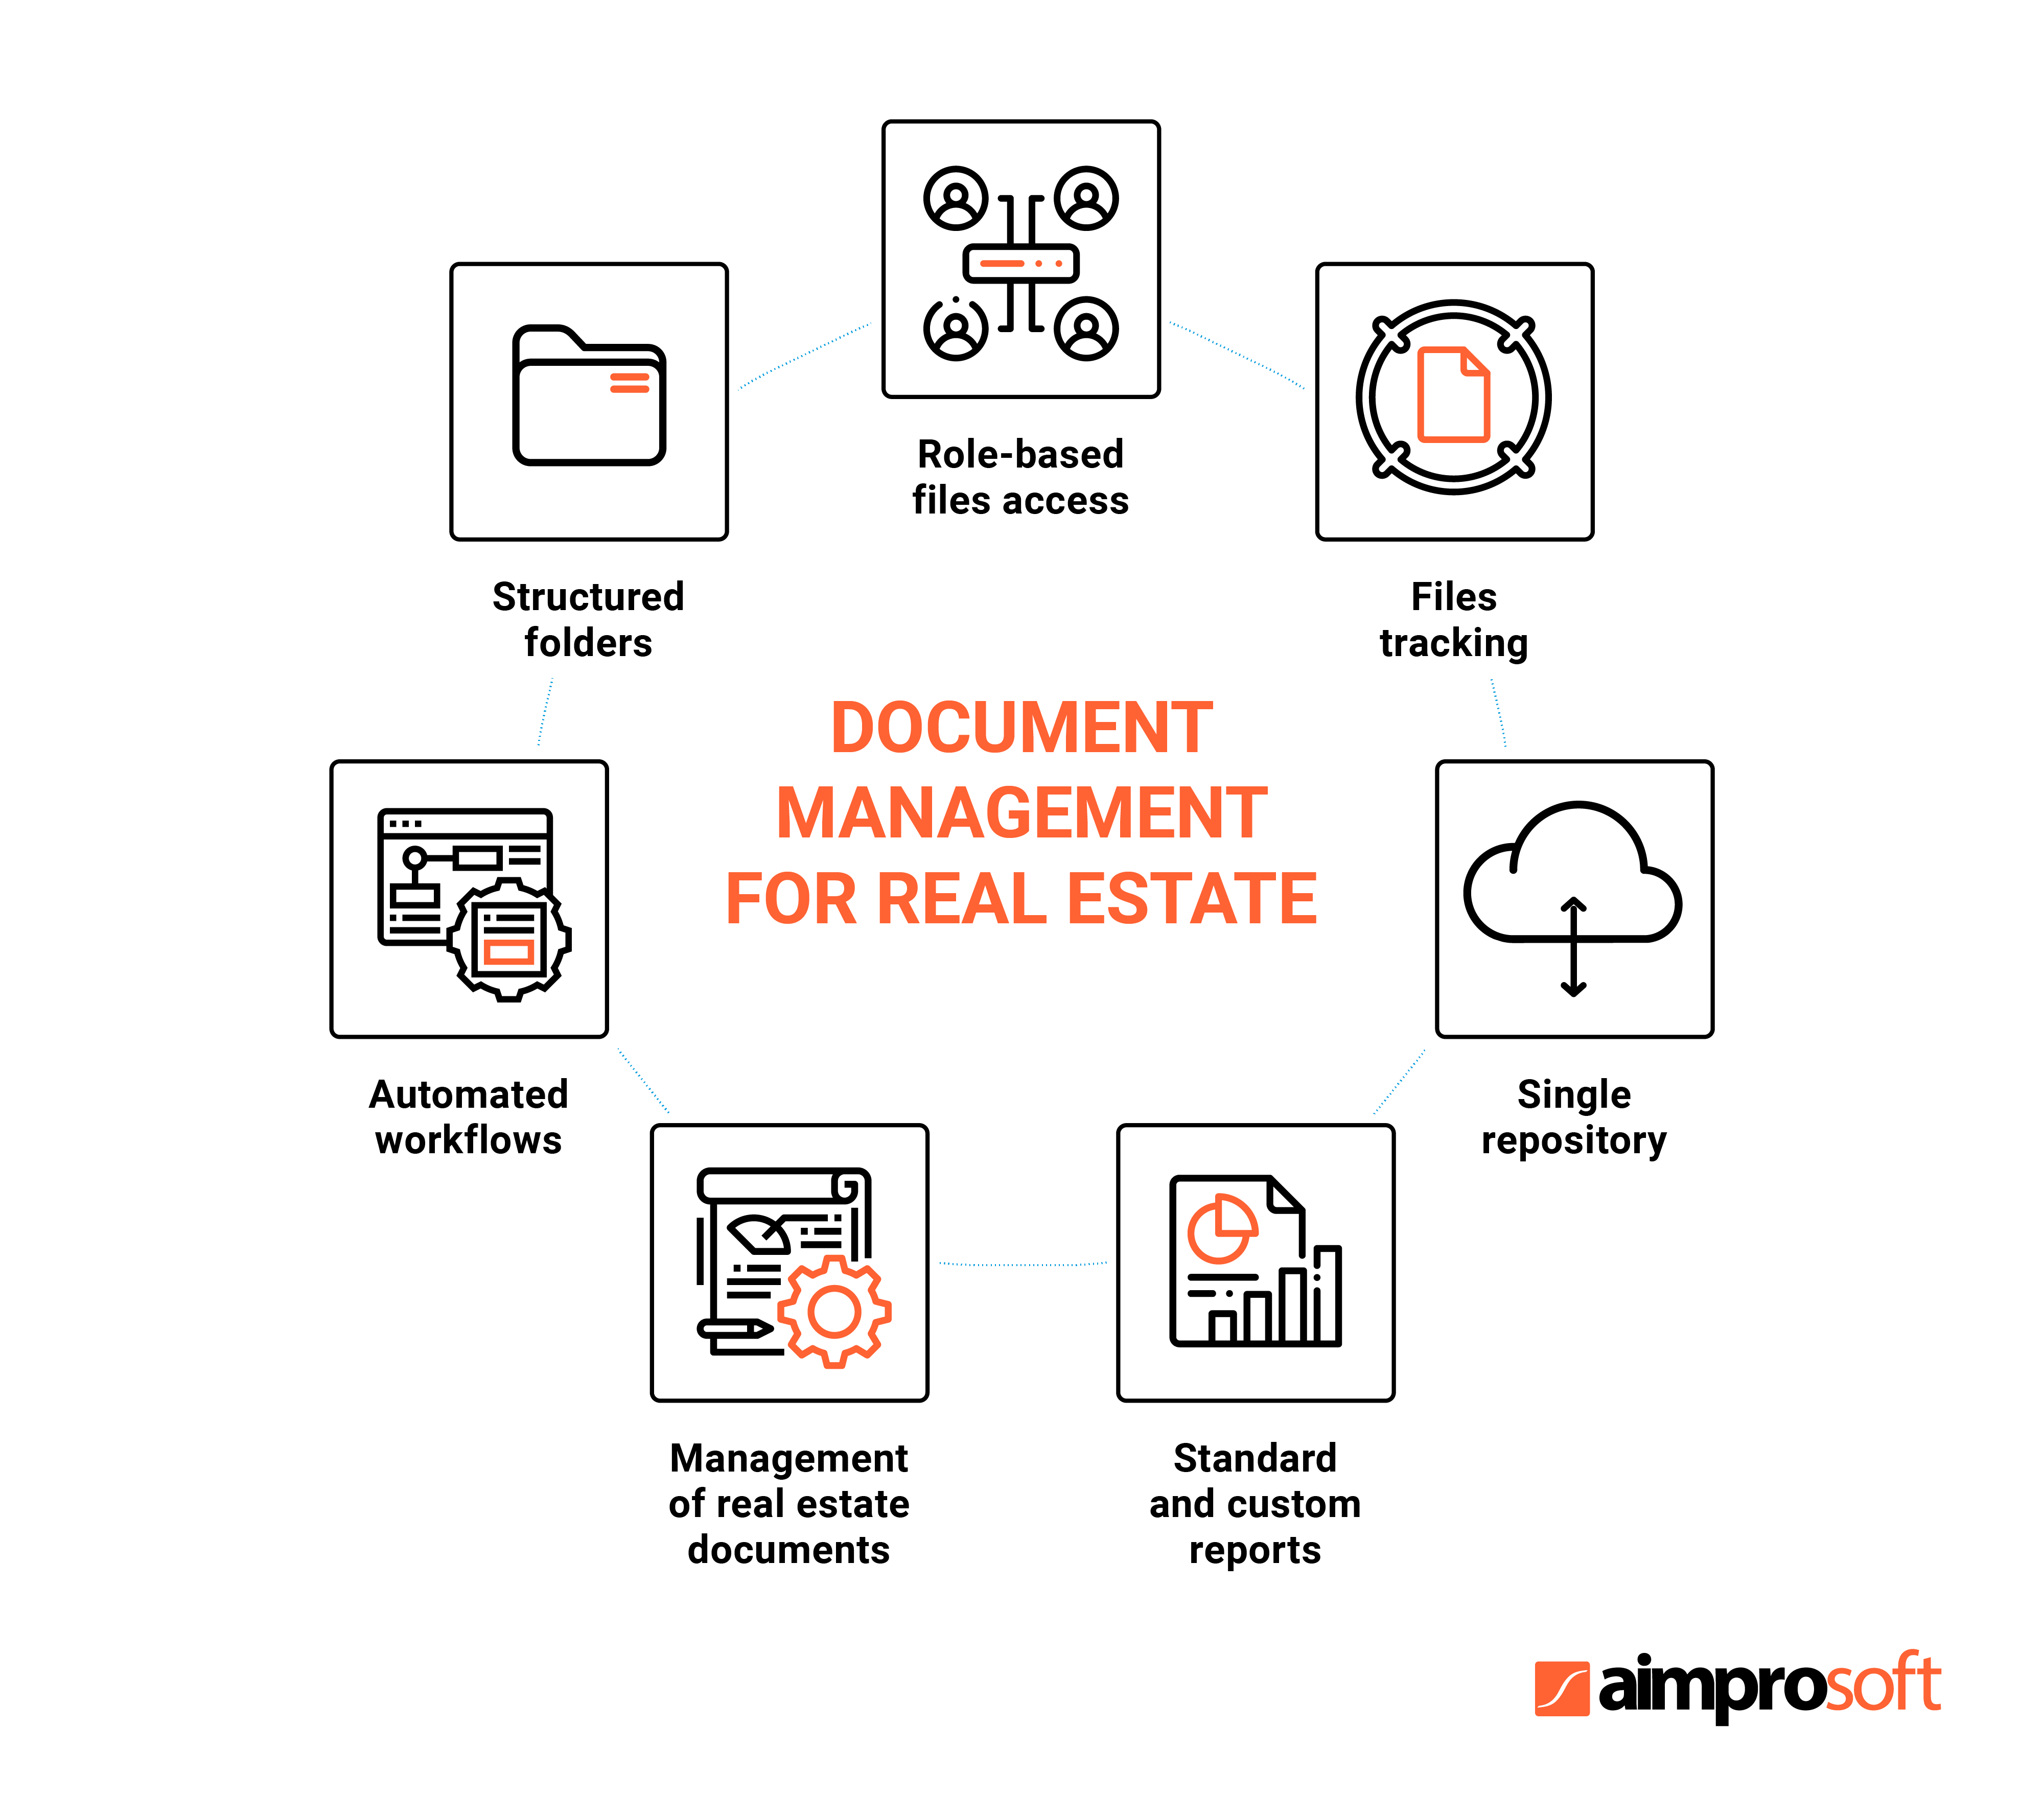 Example of document storage in real estate management software